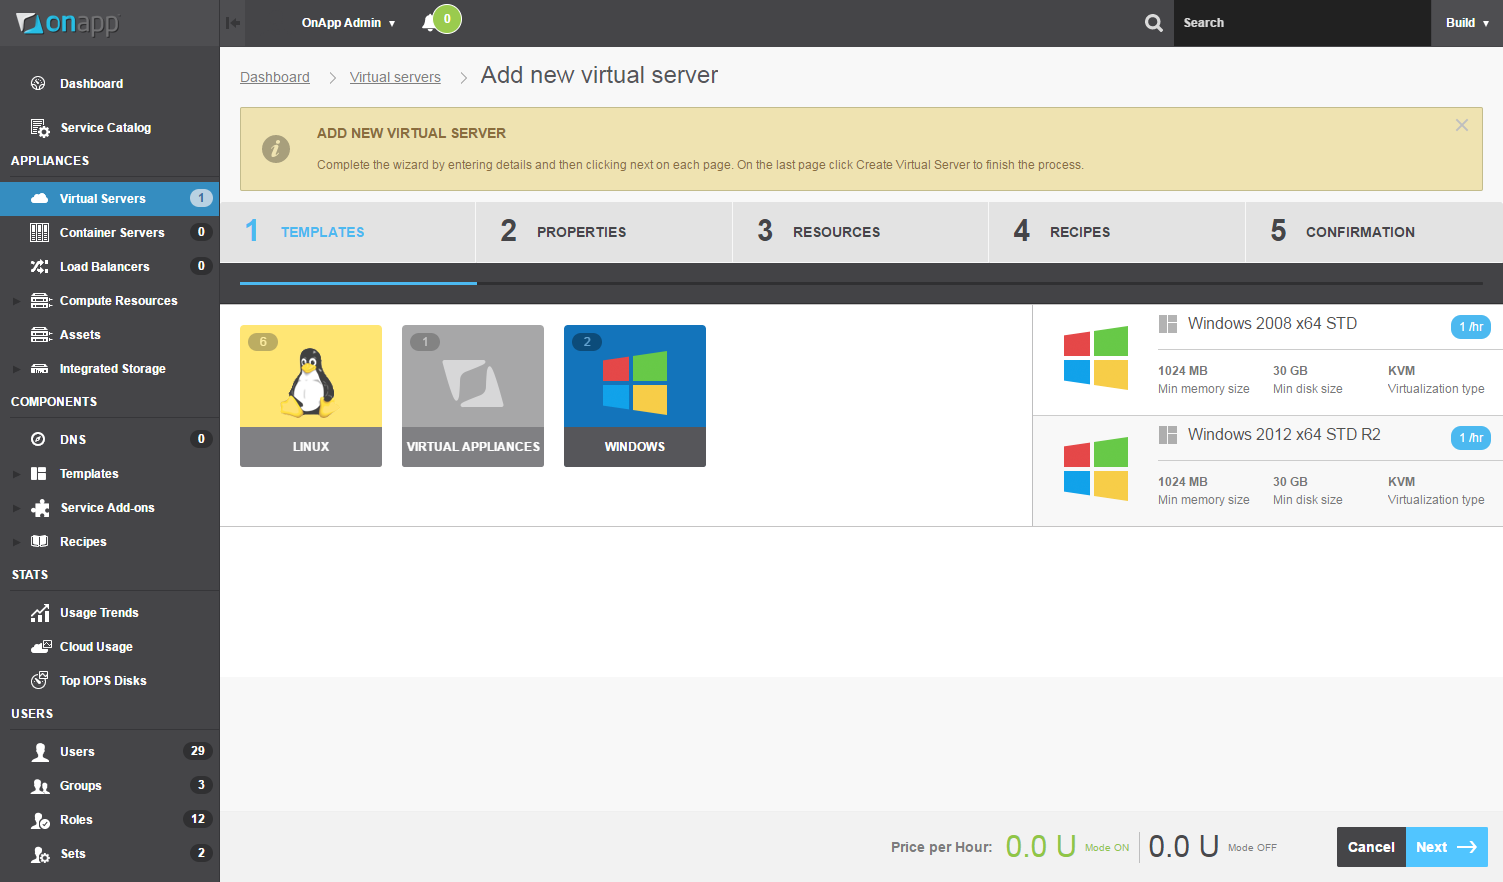 OnApp includes a fully customizable, HTML5 control panel that streamlines workload management